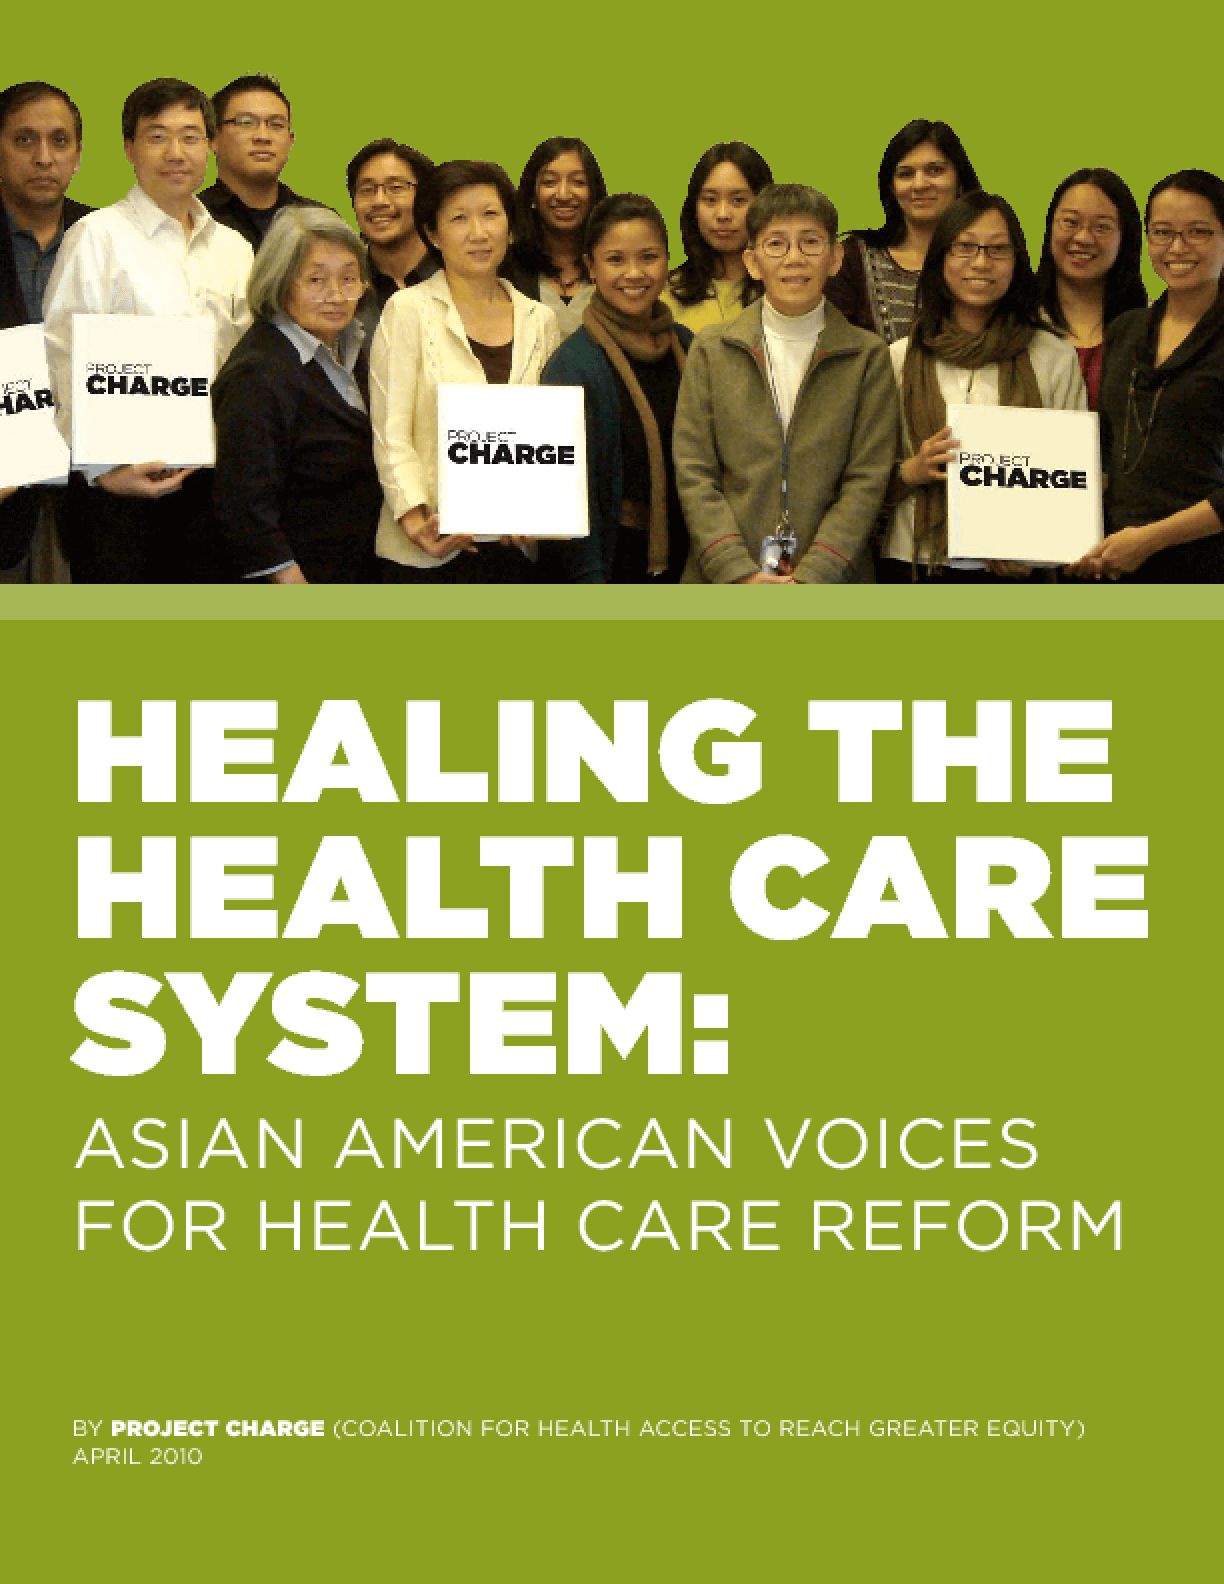 Healing the Health Care System: Asian American Voices for Health Care Reform